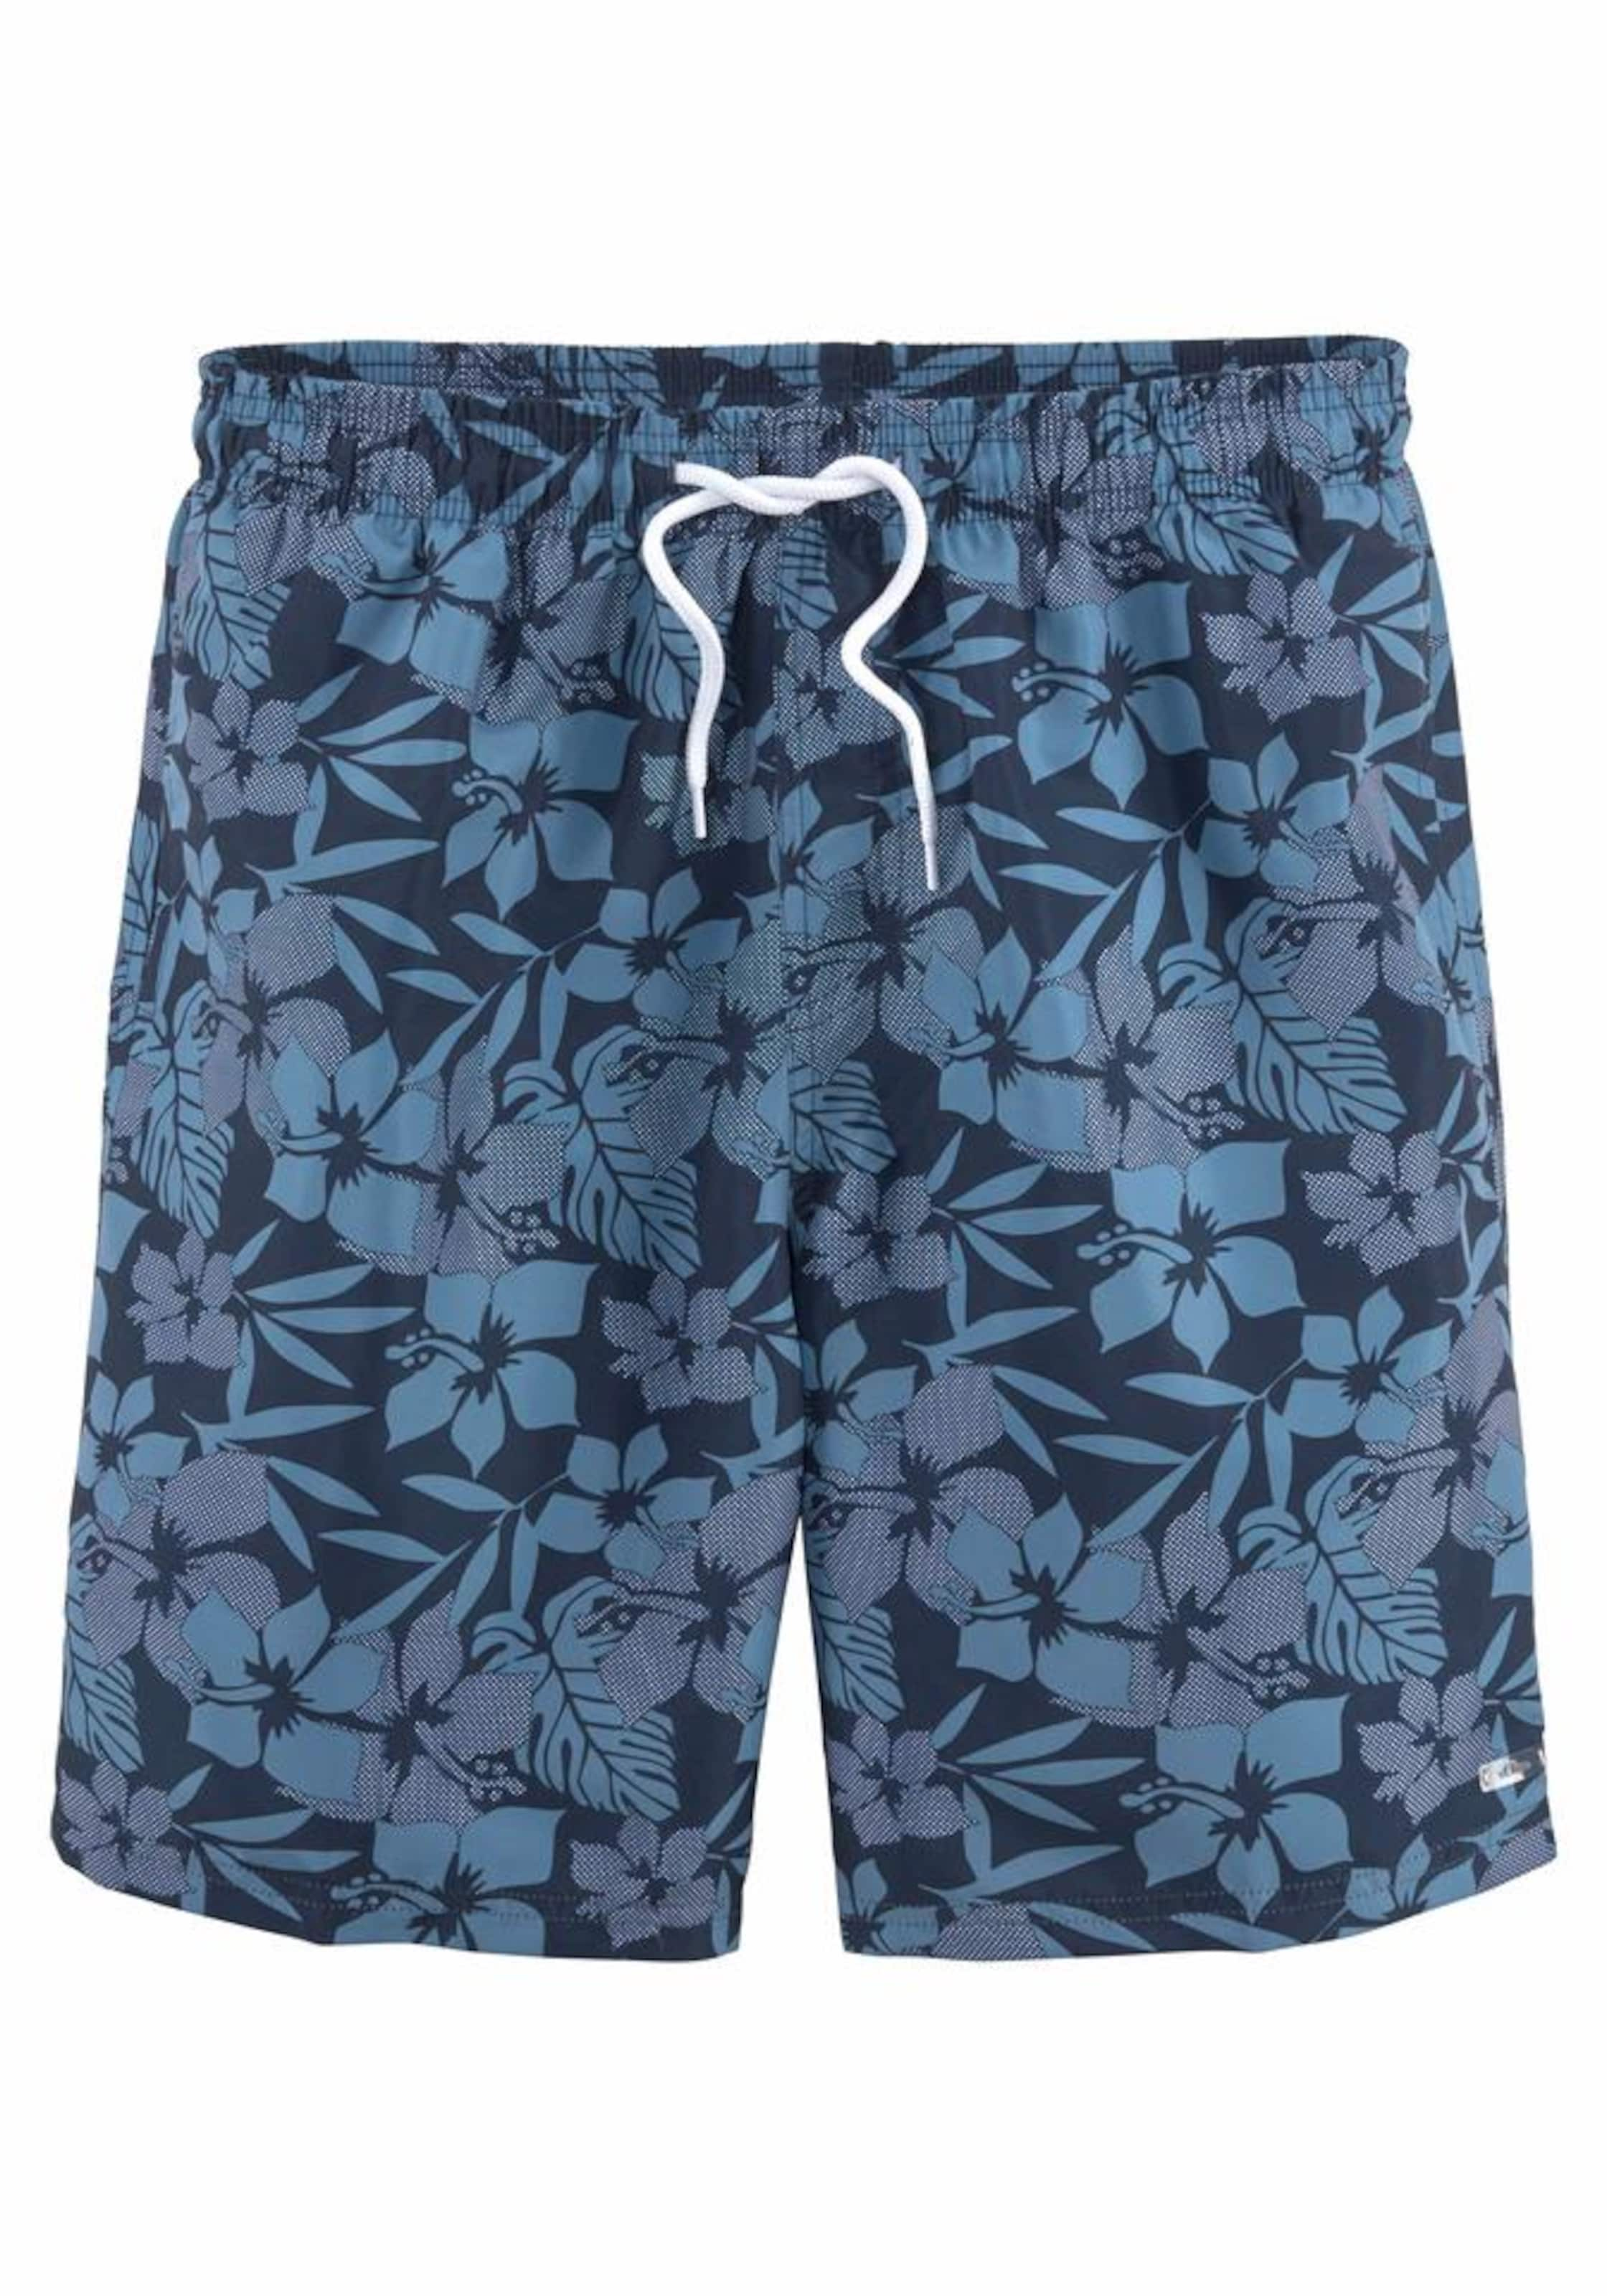 oliver In S HellblauDunkelblau S oliver Badeshorts S HellblauDunkelblau Badeshorts In Badeshorts oliver In IE2WDH9Y